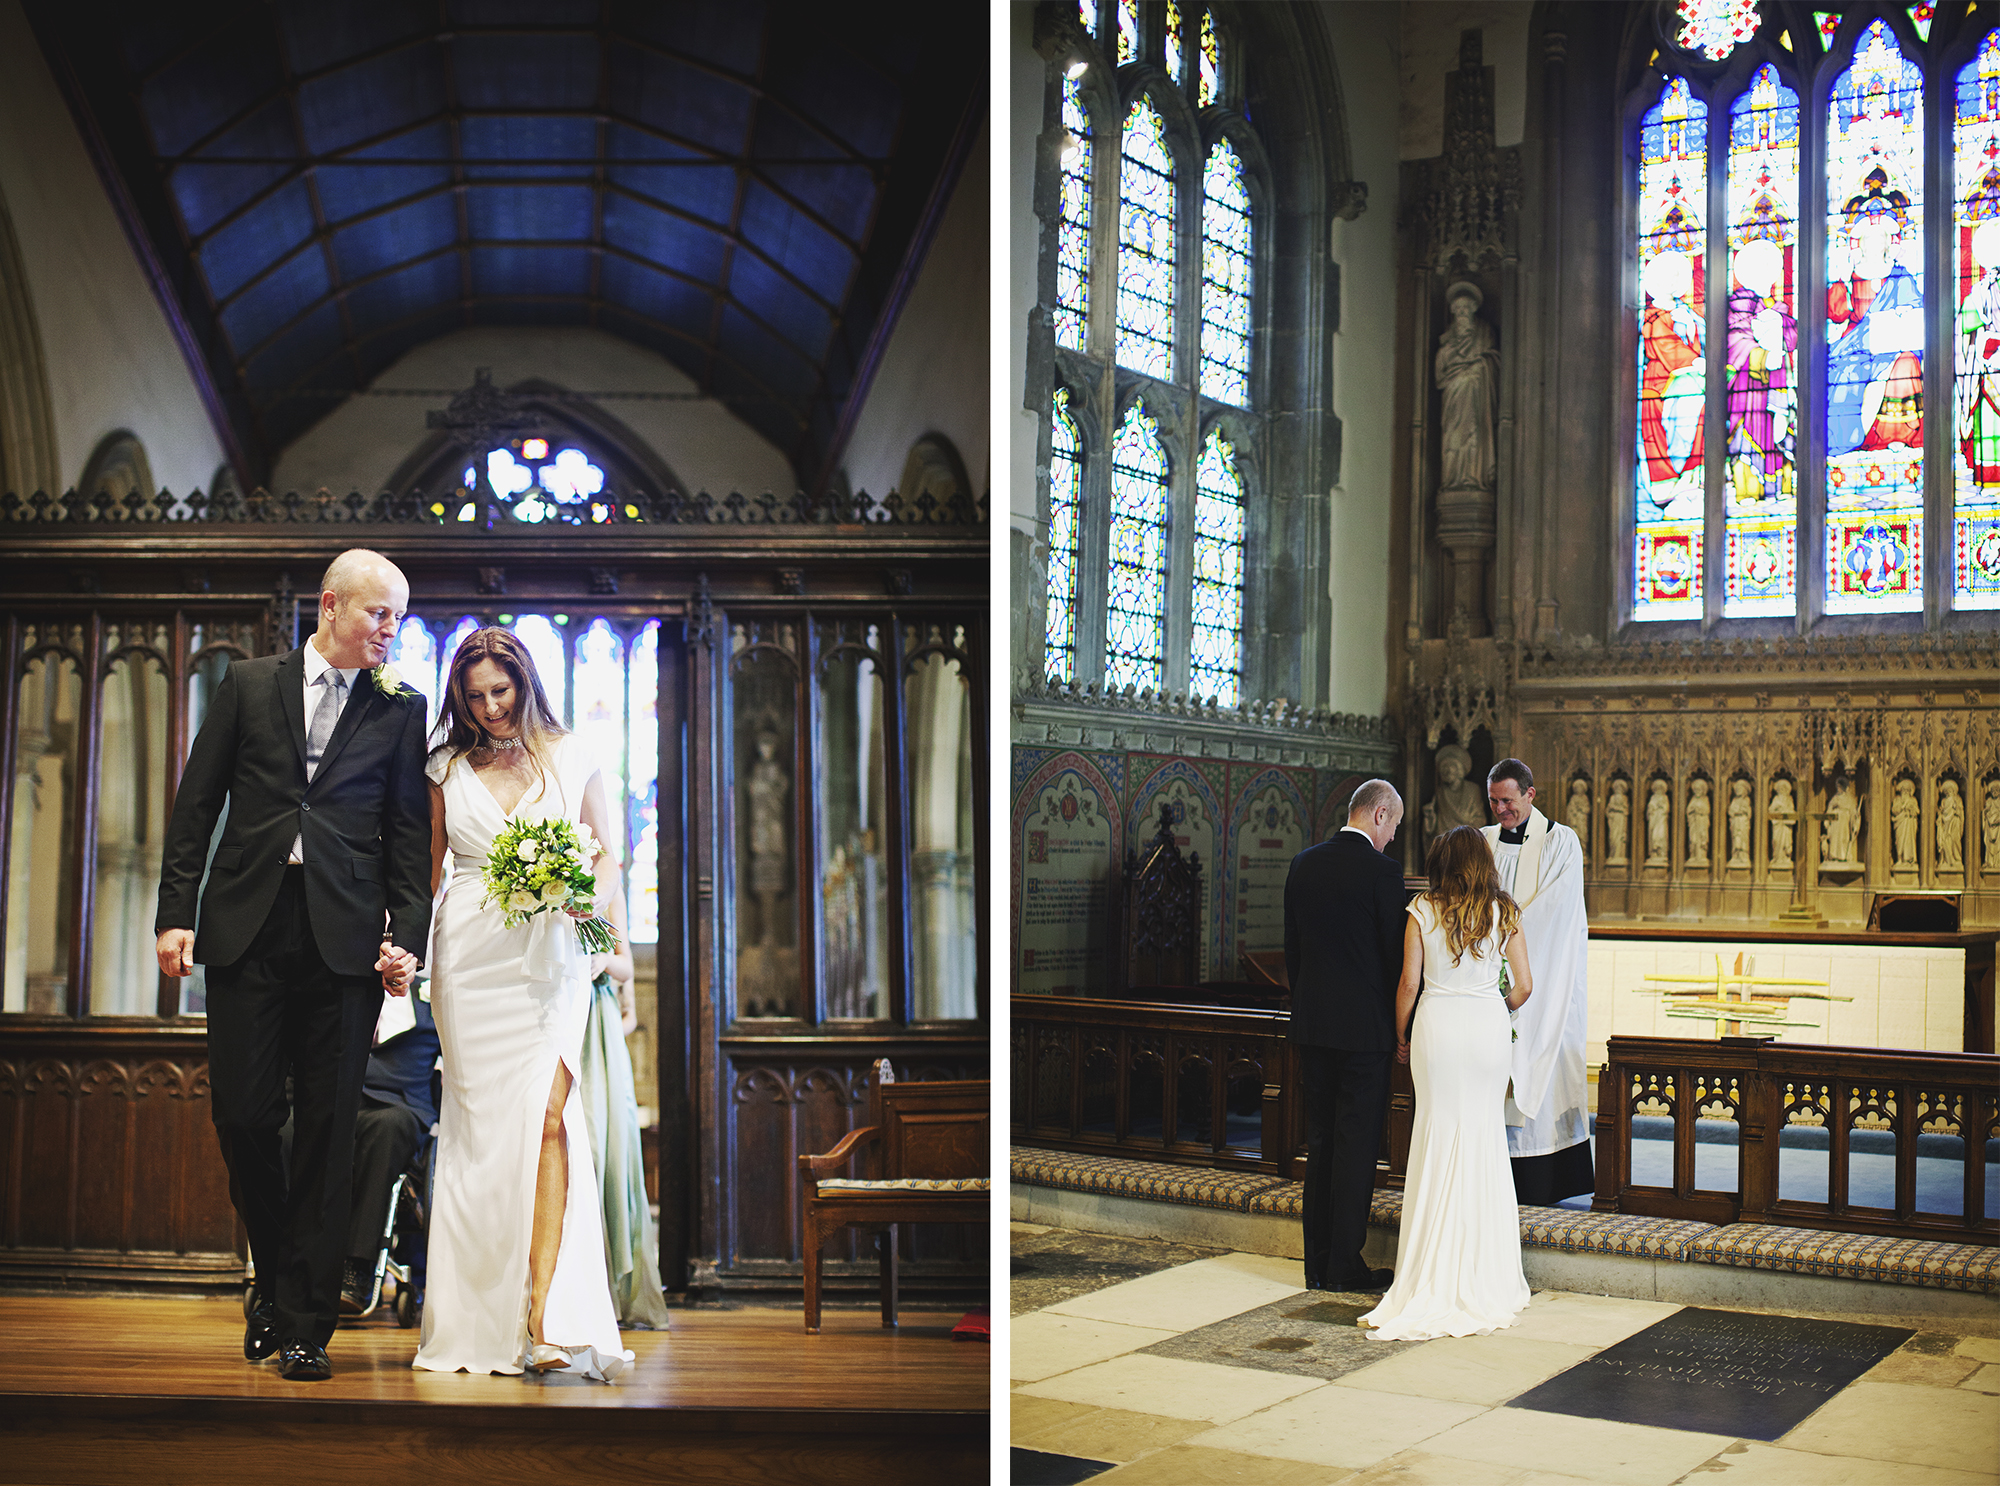 katie leask photography wedding la coco noire 005